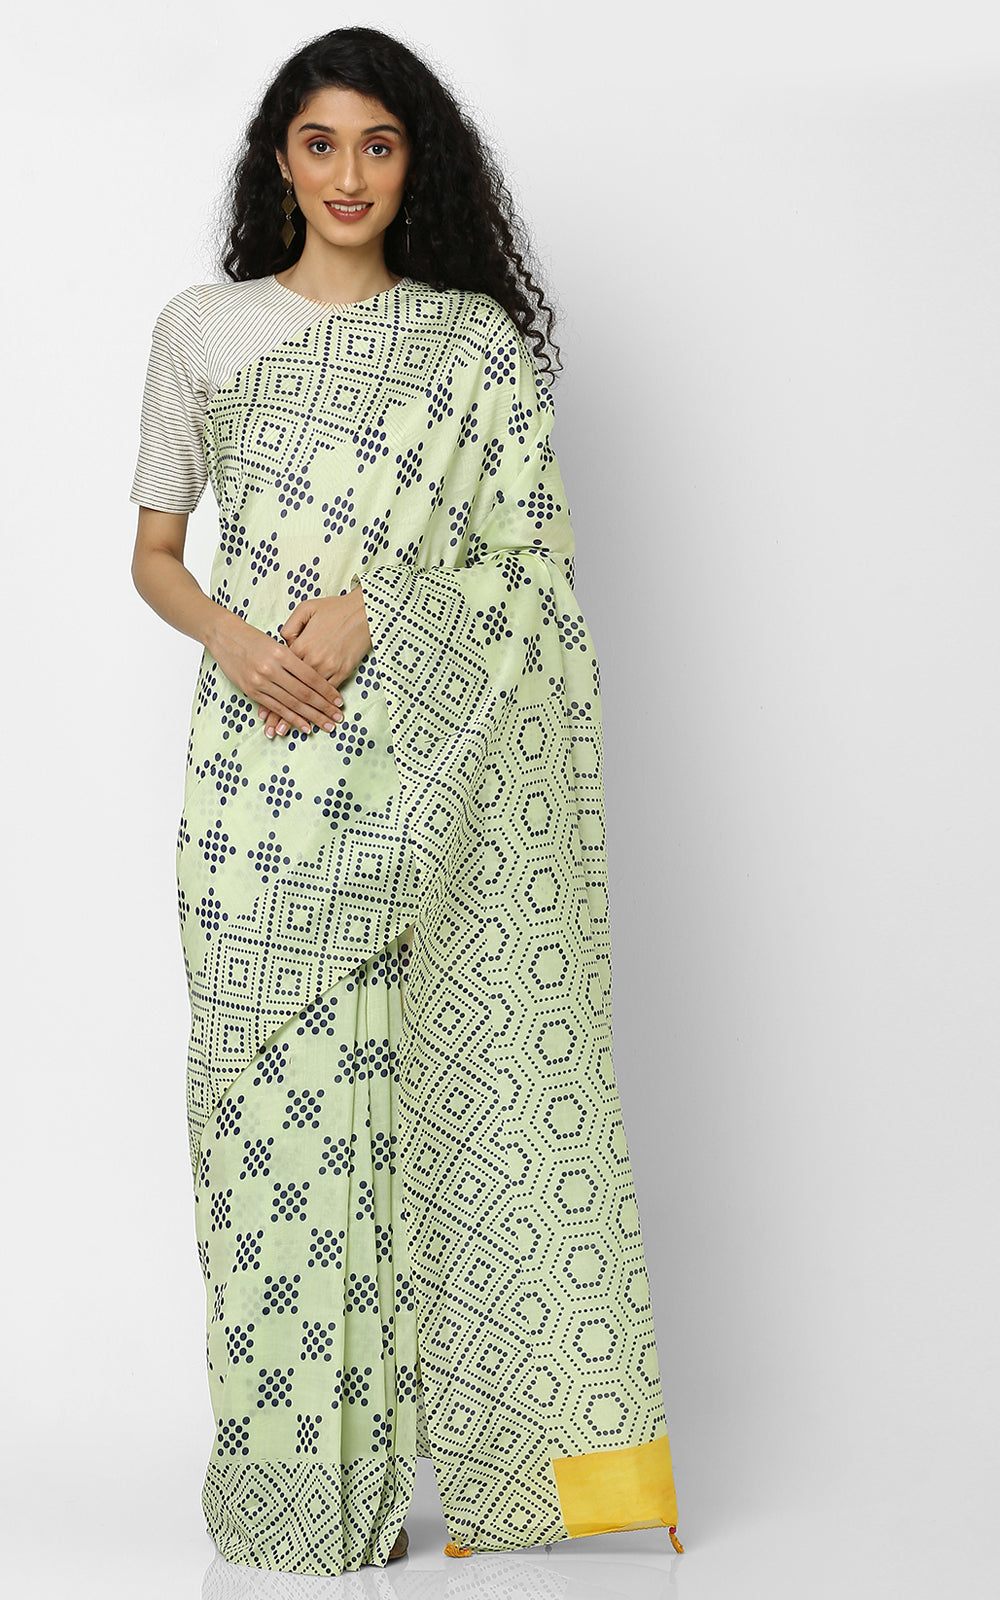 YELLOW CHANDERI SILK SAREE WITH GEOMETRIC PRINTS